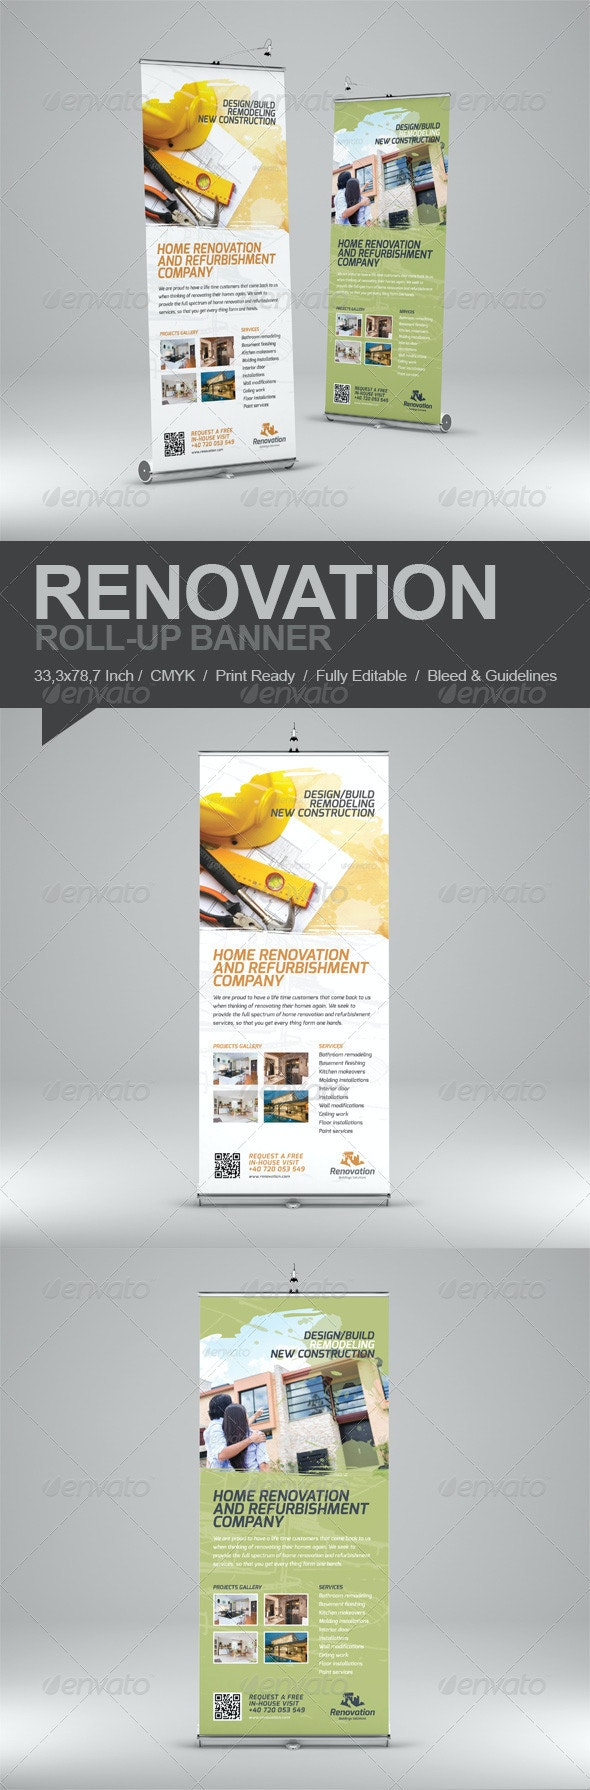 Renovation Roll-Up Banner - Signage Print Templates